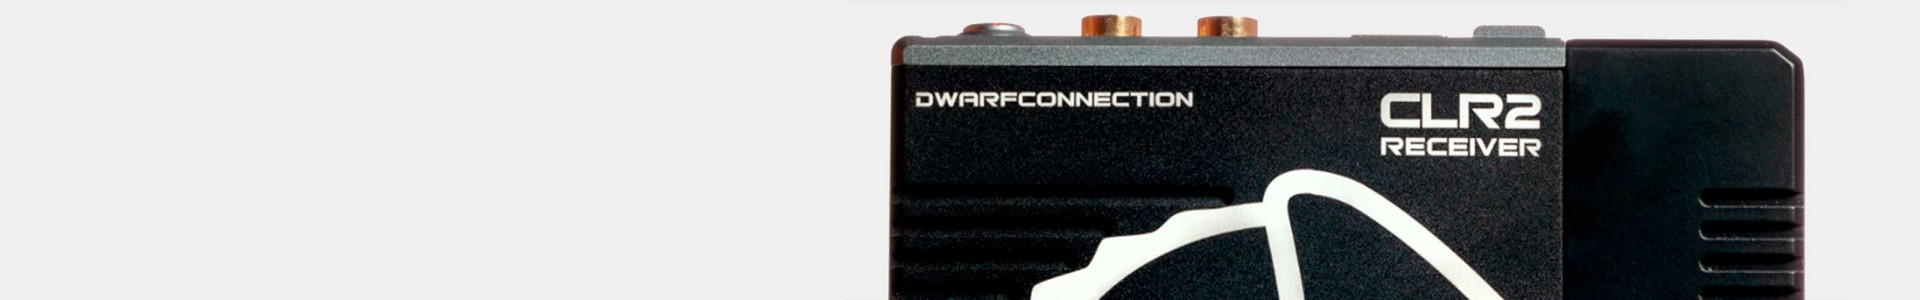 DwarfConnection